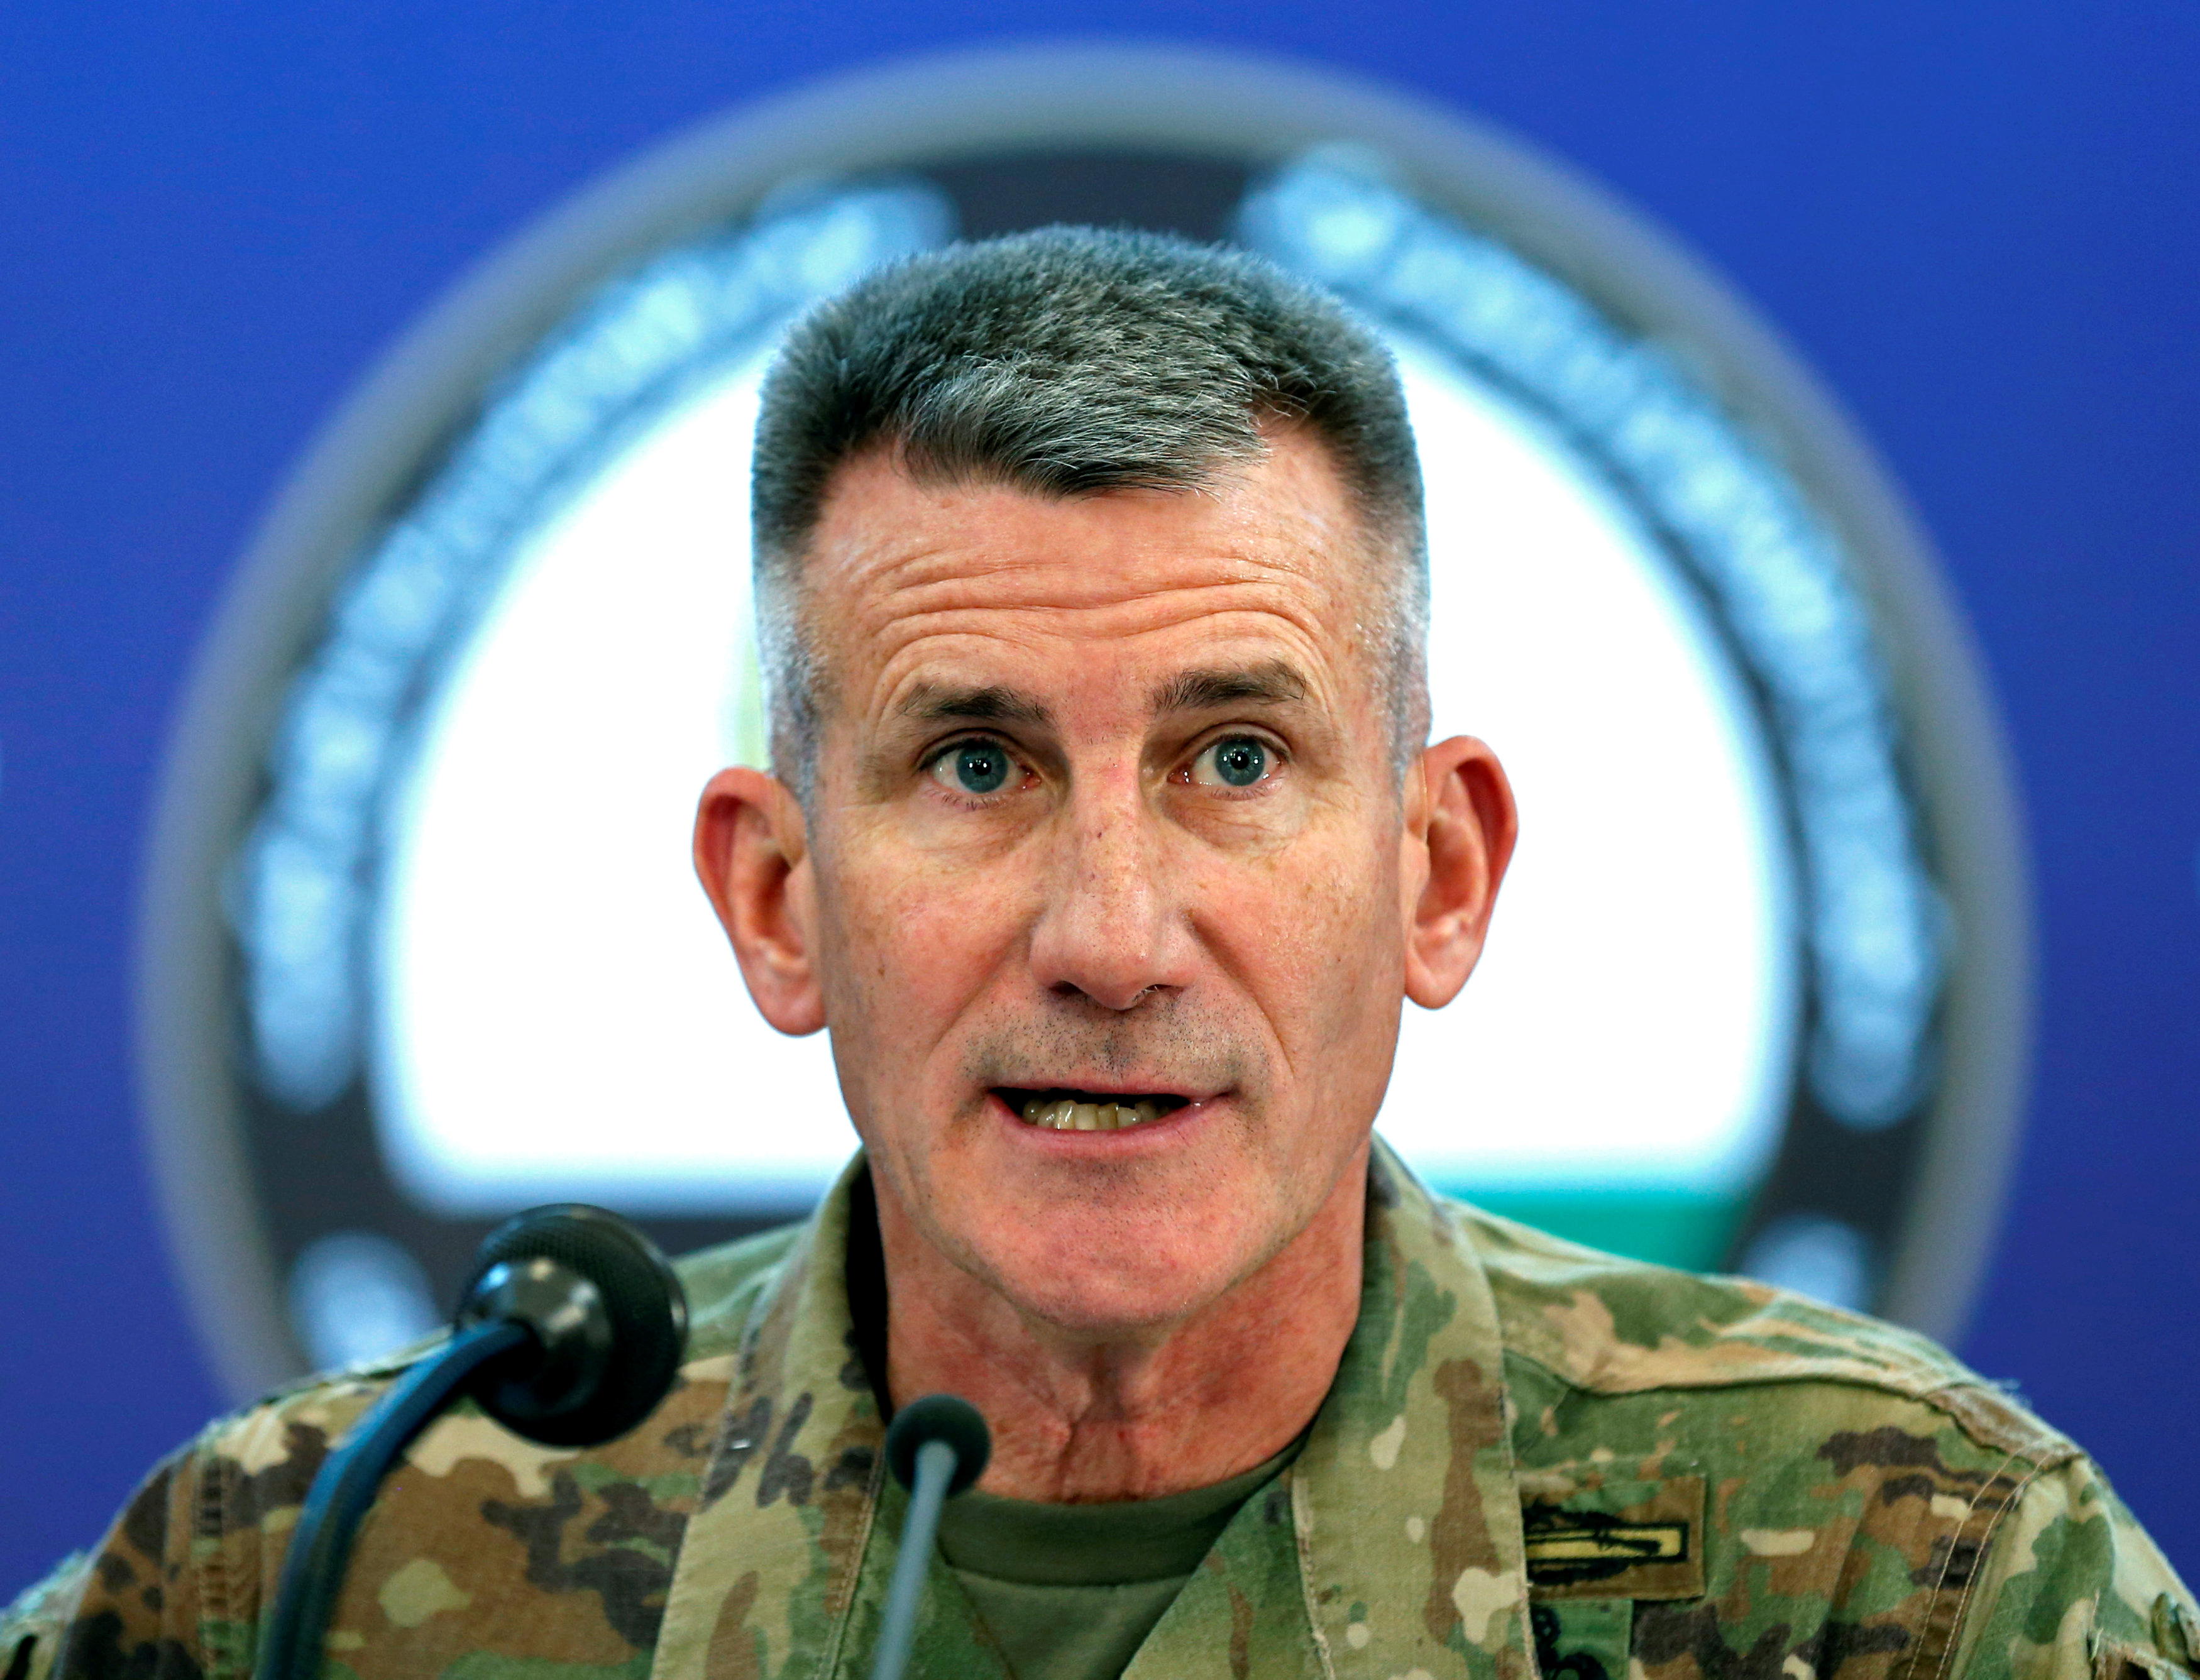 FILE - U.S. Army General John Nicholson, commander of Resolute Support forces and U.S. forces in Afghanistan, speaks during a news conference in Kabul, Afghanistan, Nov. 20, 2017.